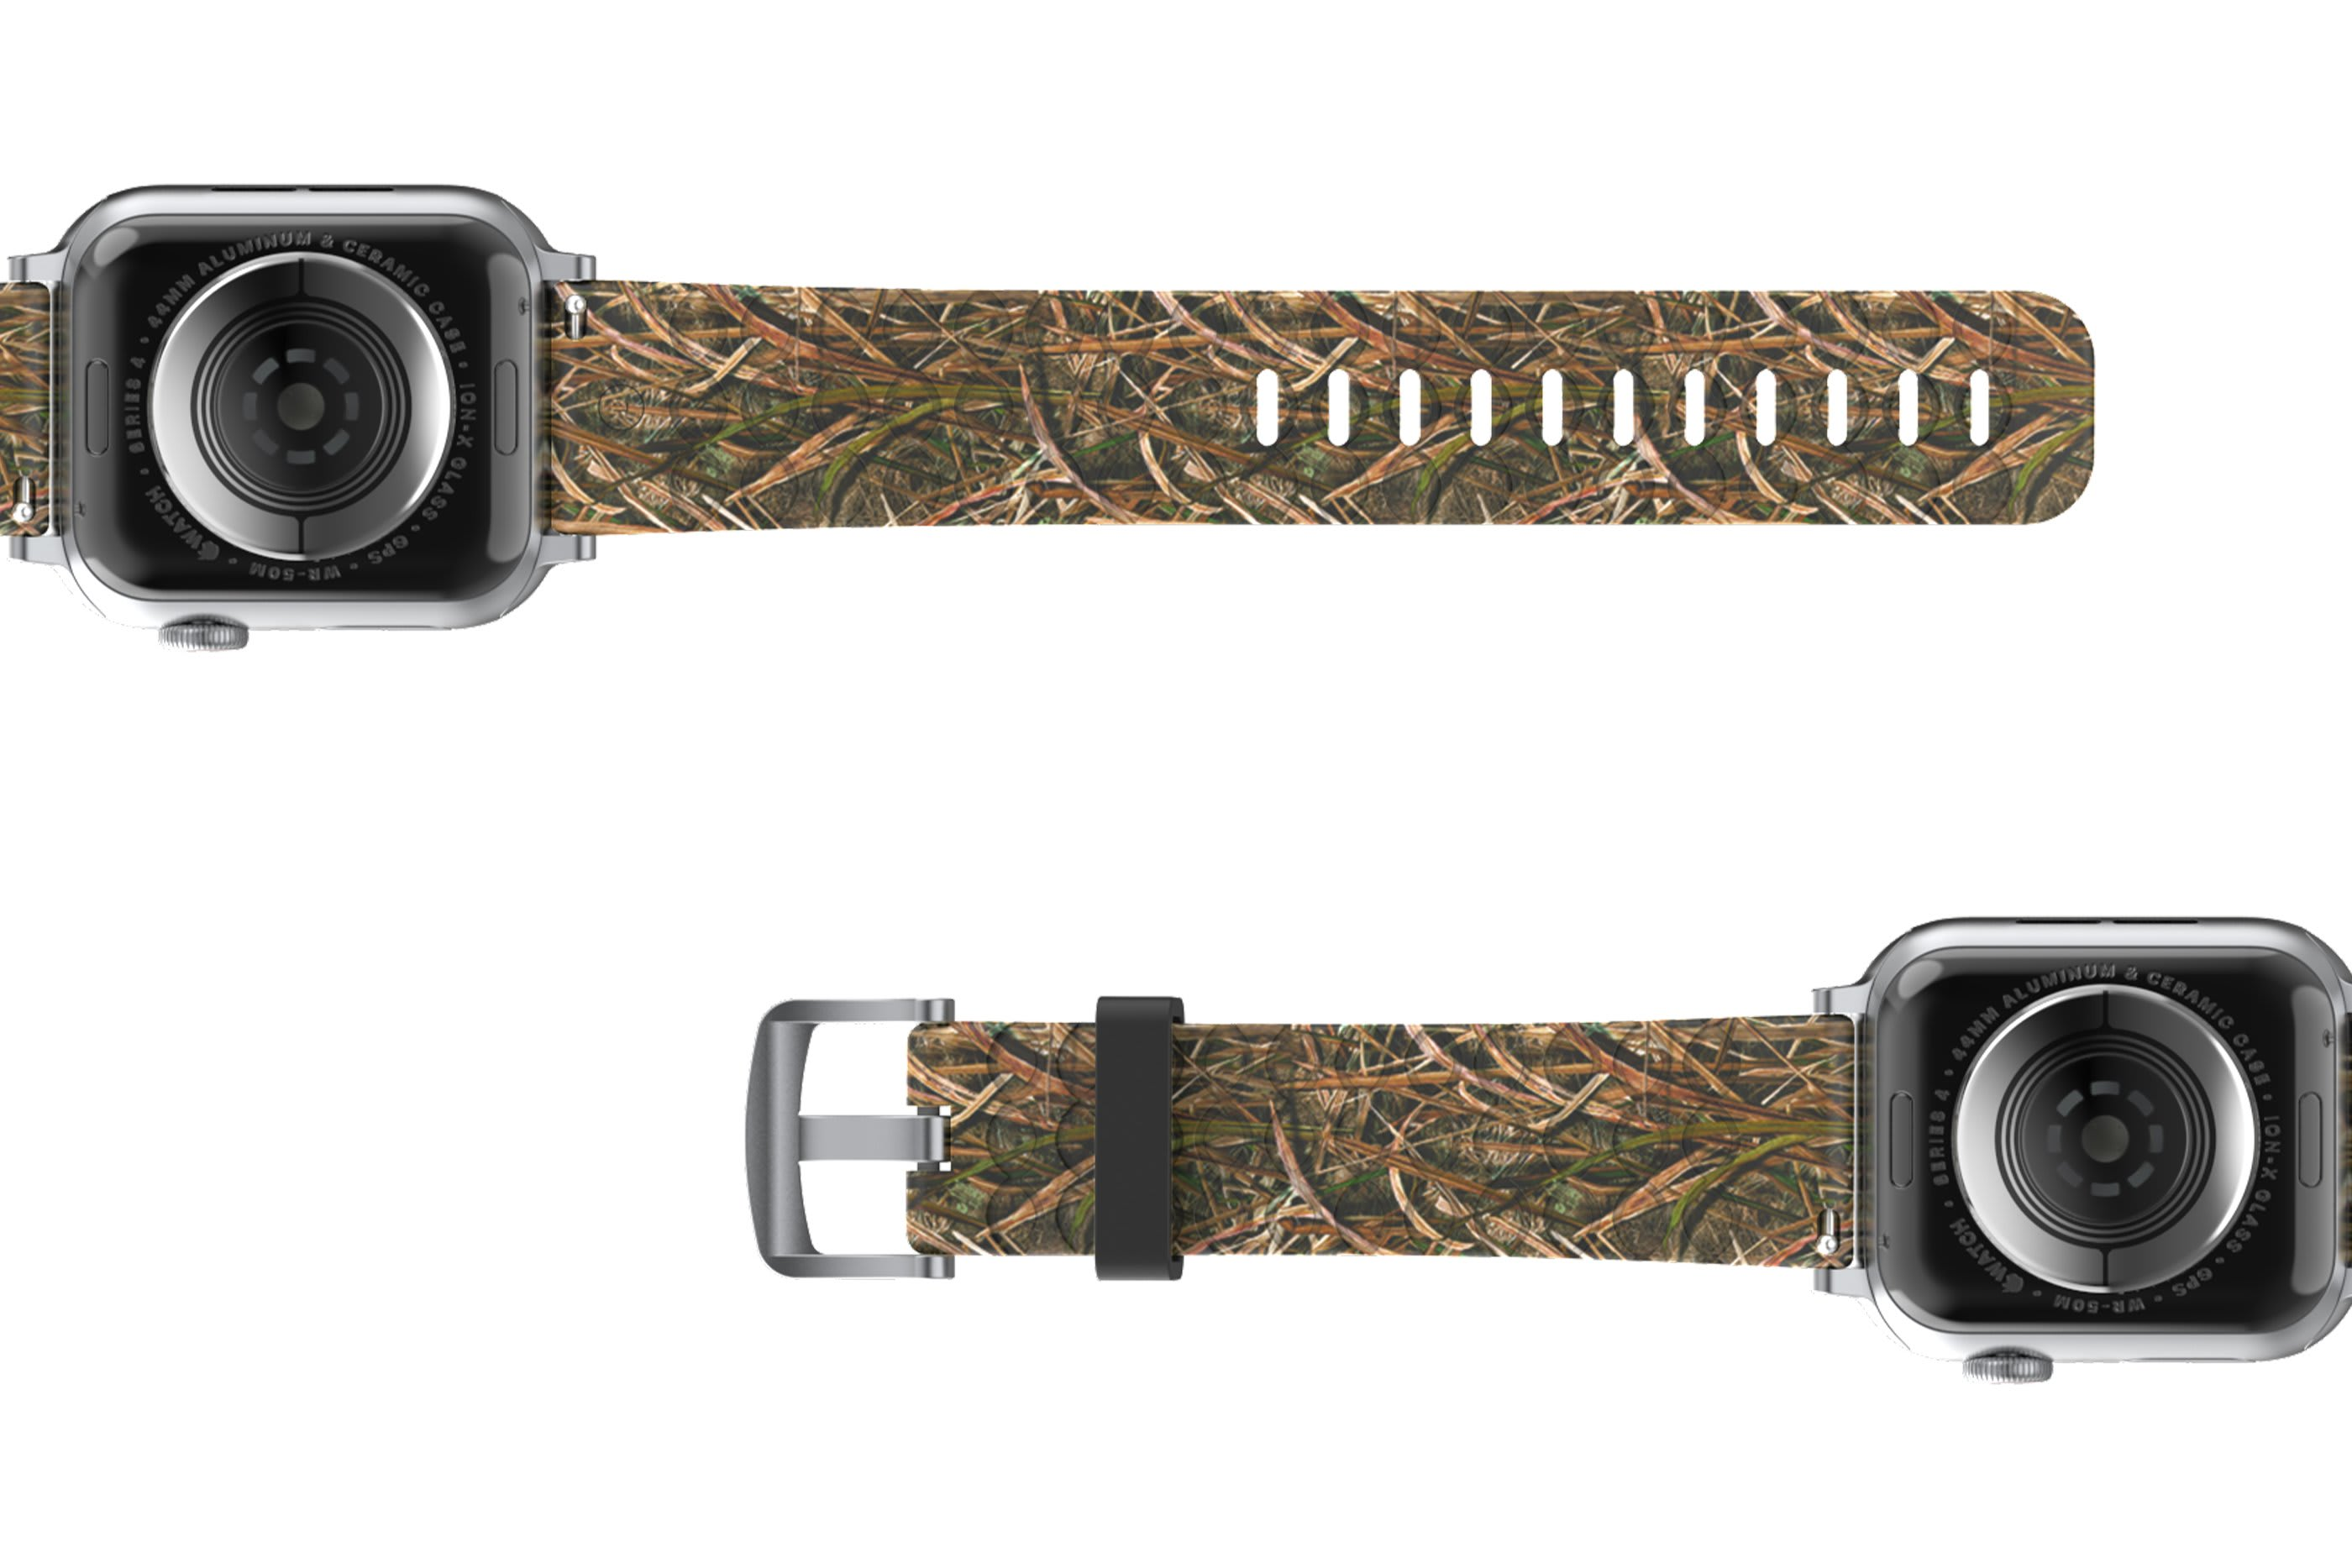 Mossy Oak Blades Apple Watch Band with silver hardware viewed bottom up